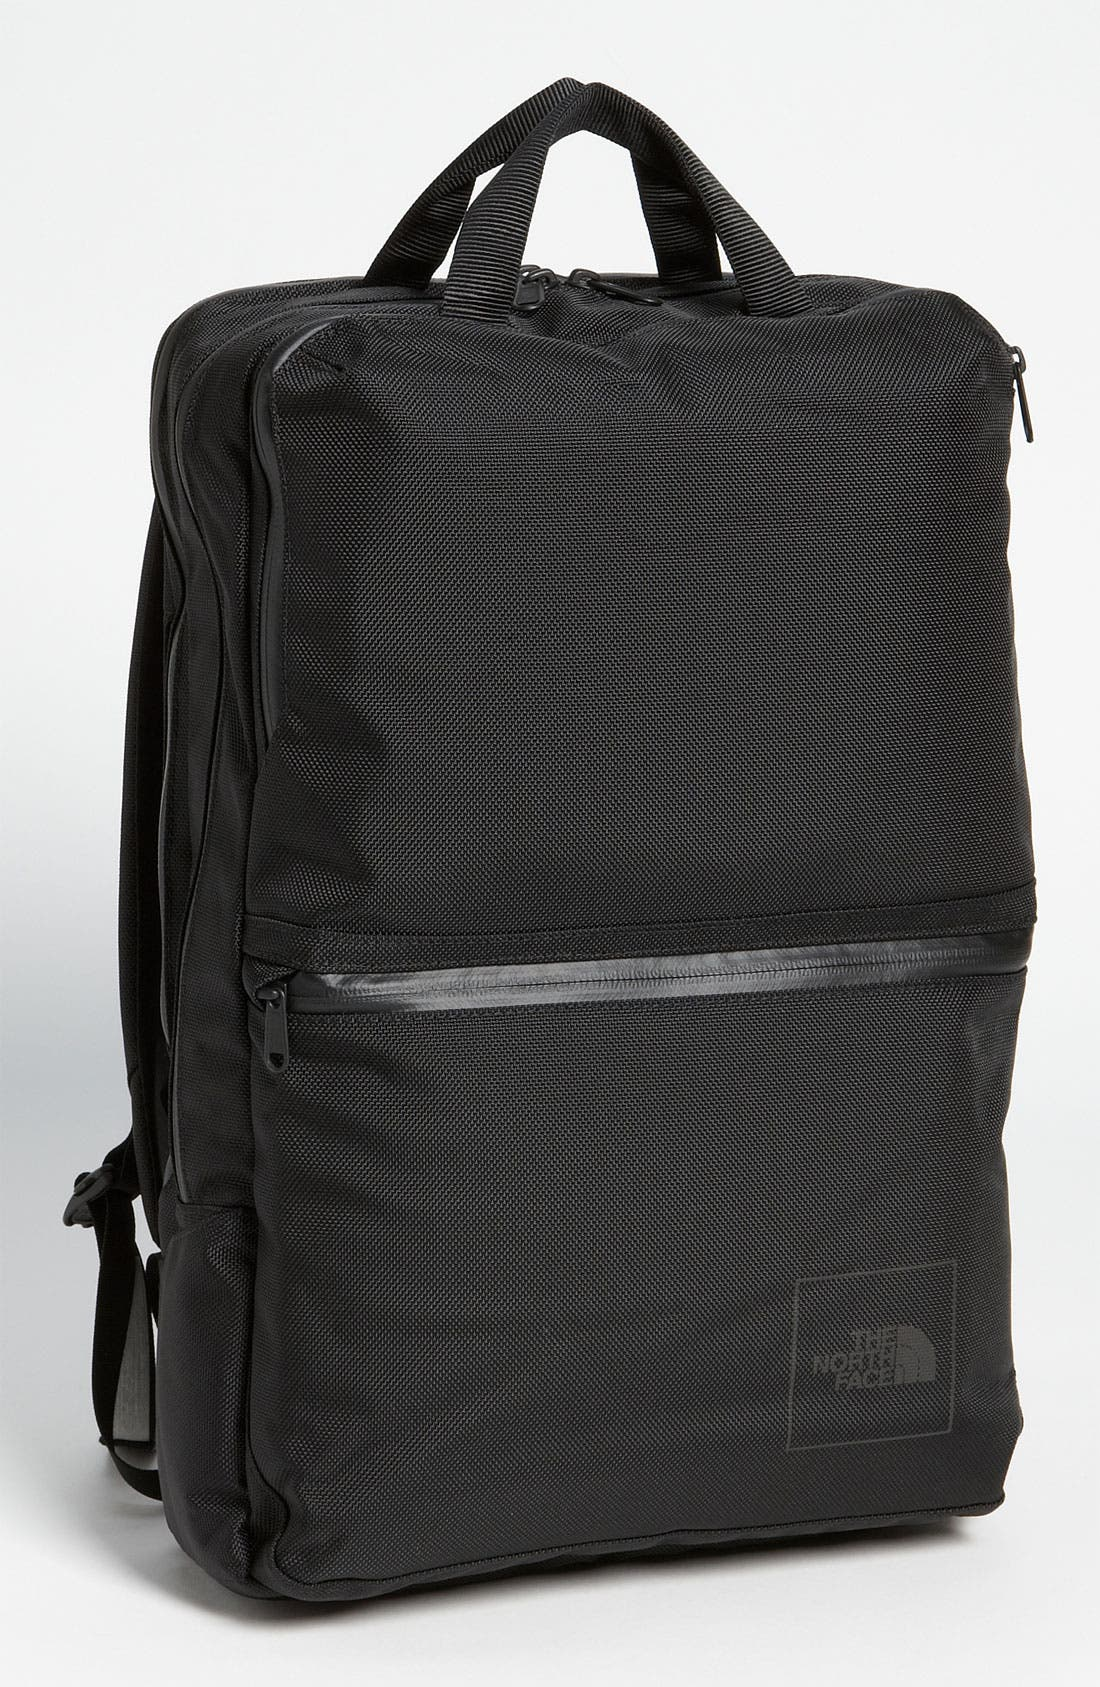 Main Image - The North Face 'Shuttle' Backpack